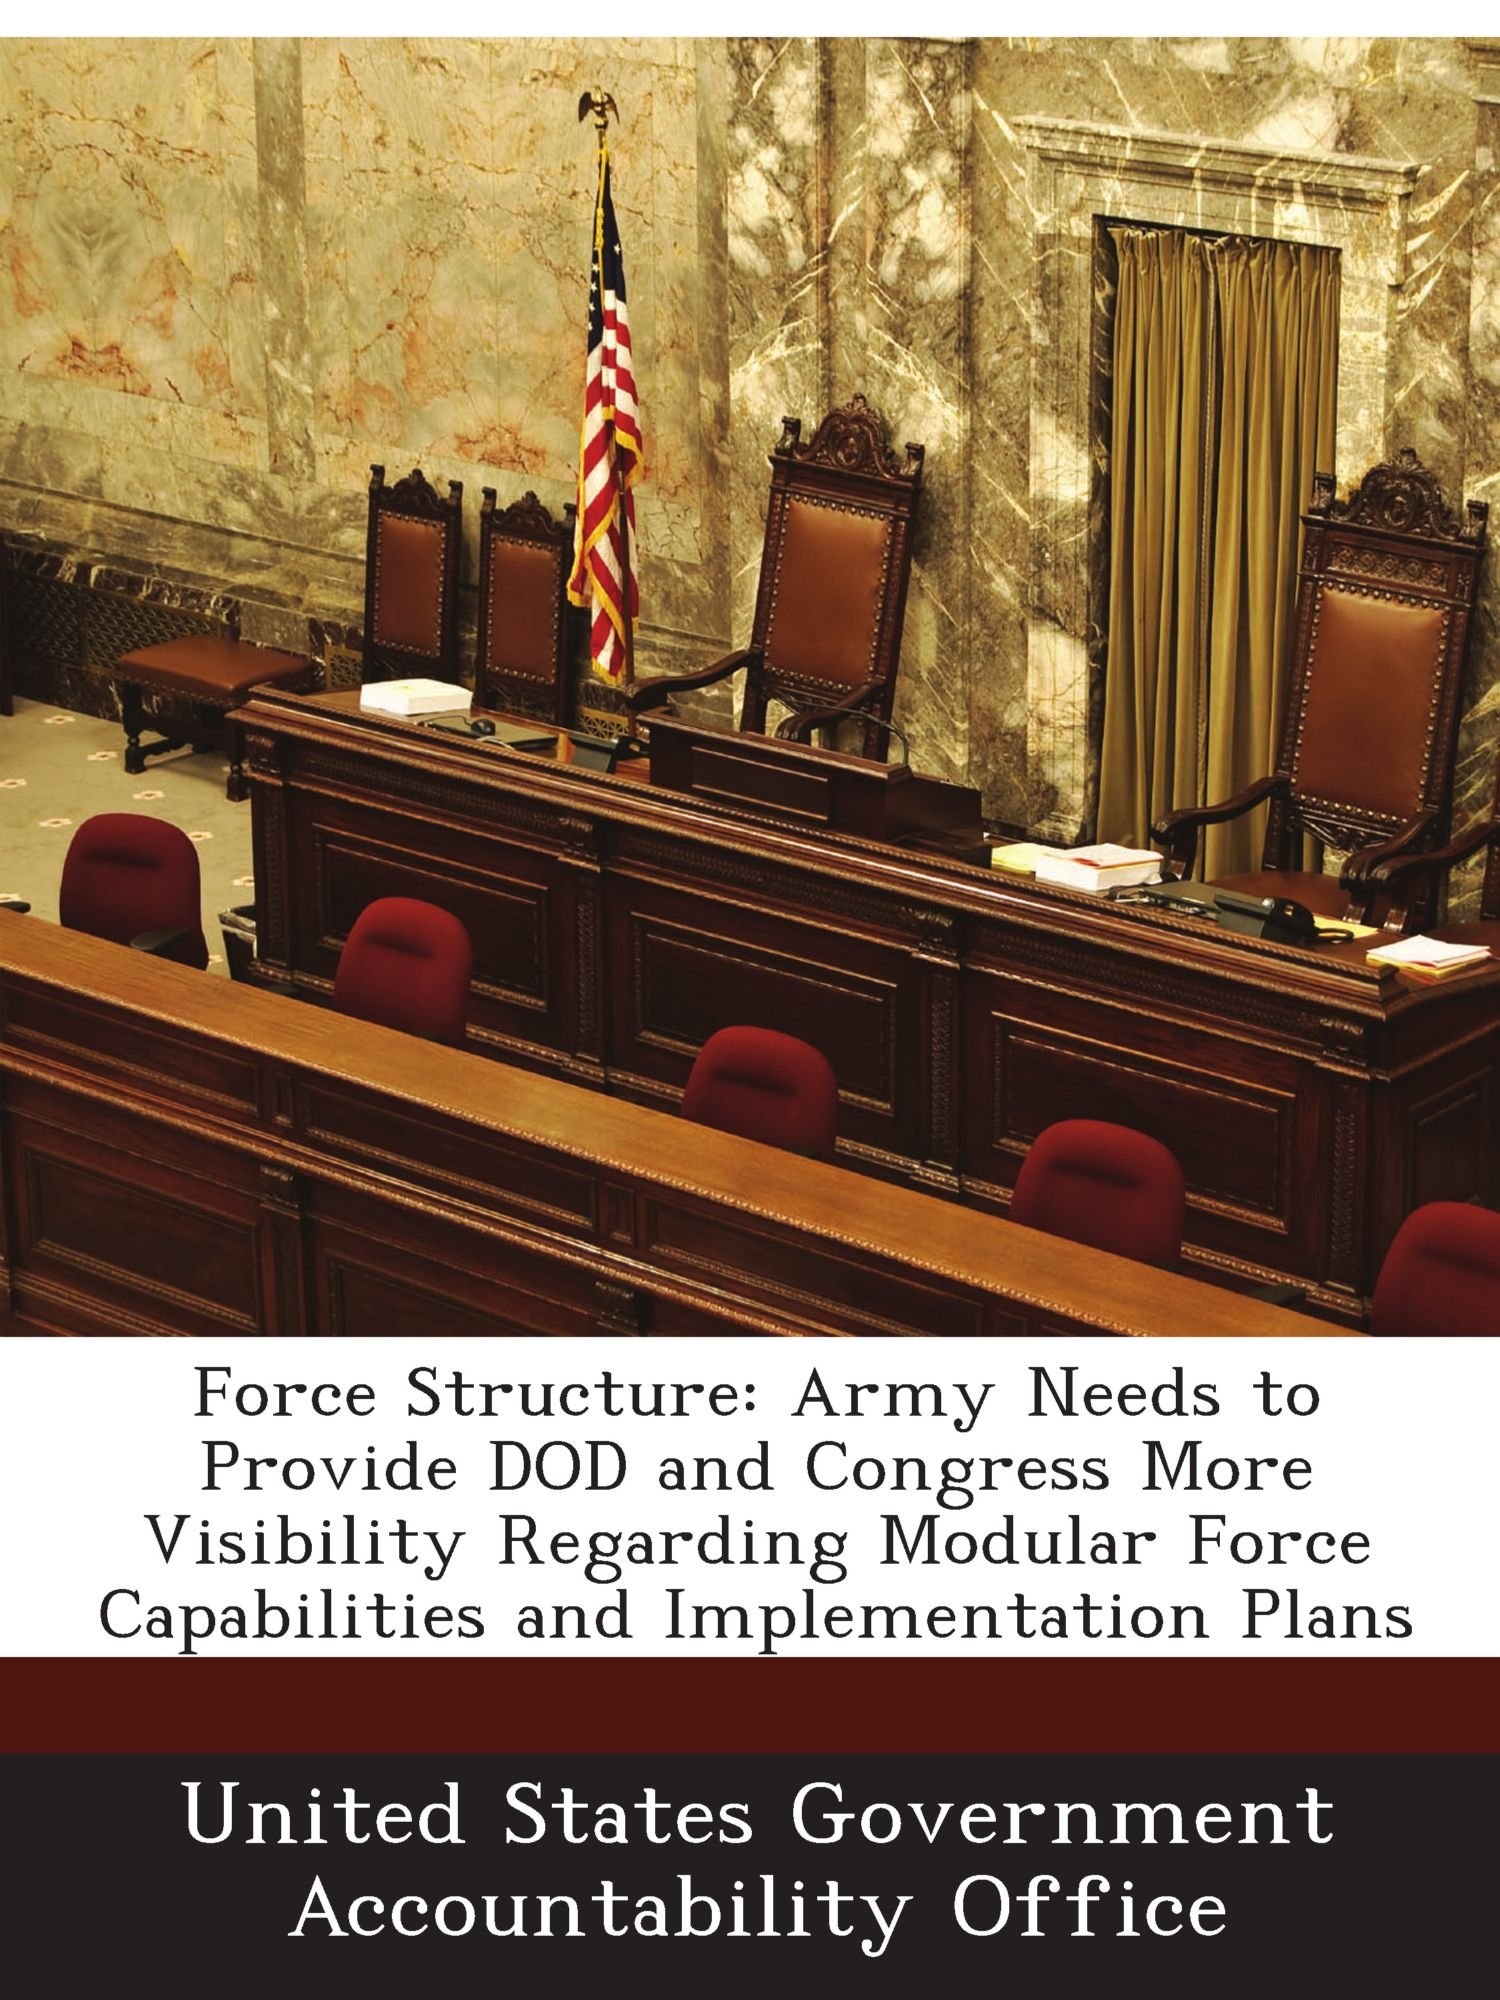 Download Force Structure: Army Needs to Provide DOD and Congress More Visibility Regarding Modular Force Capabilities and Implementation Plans PDF